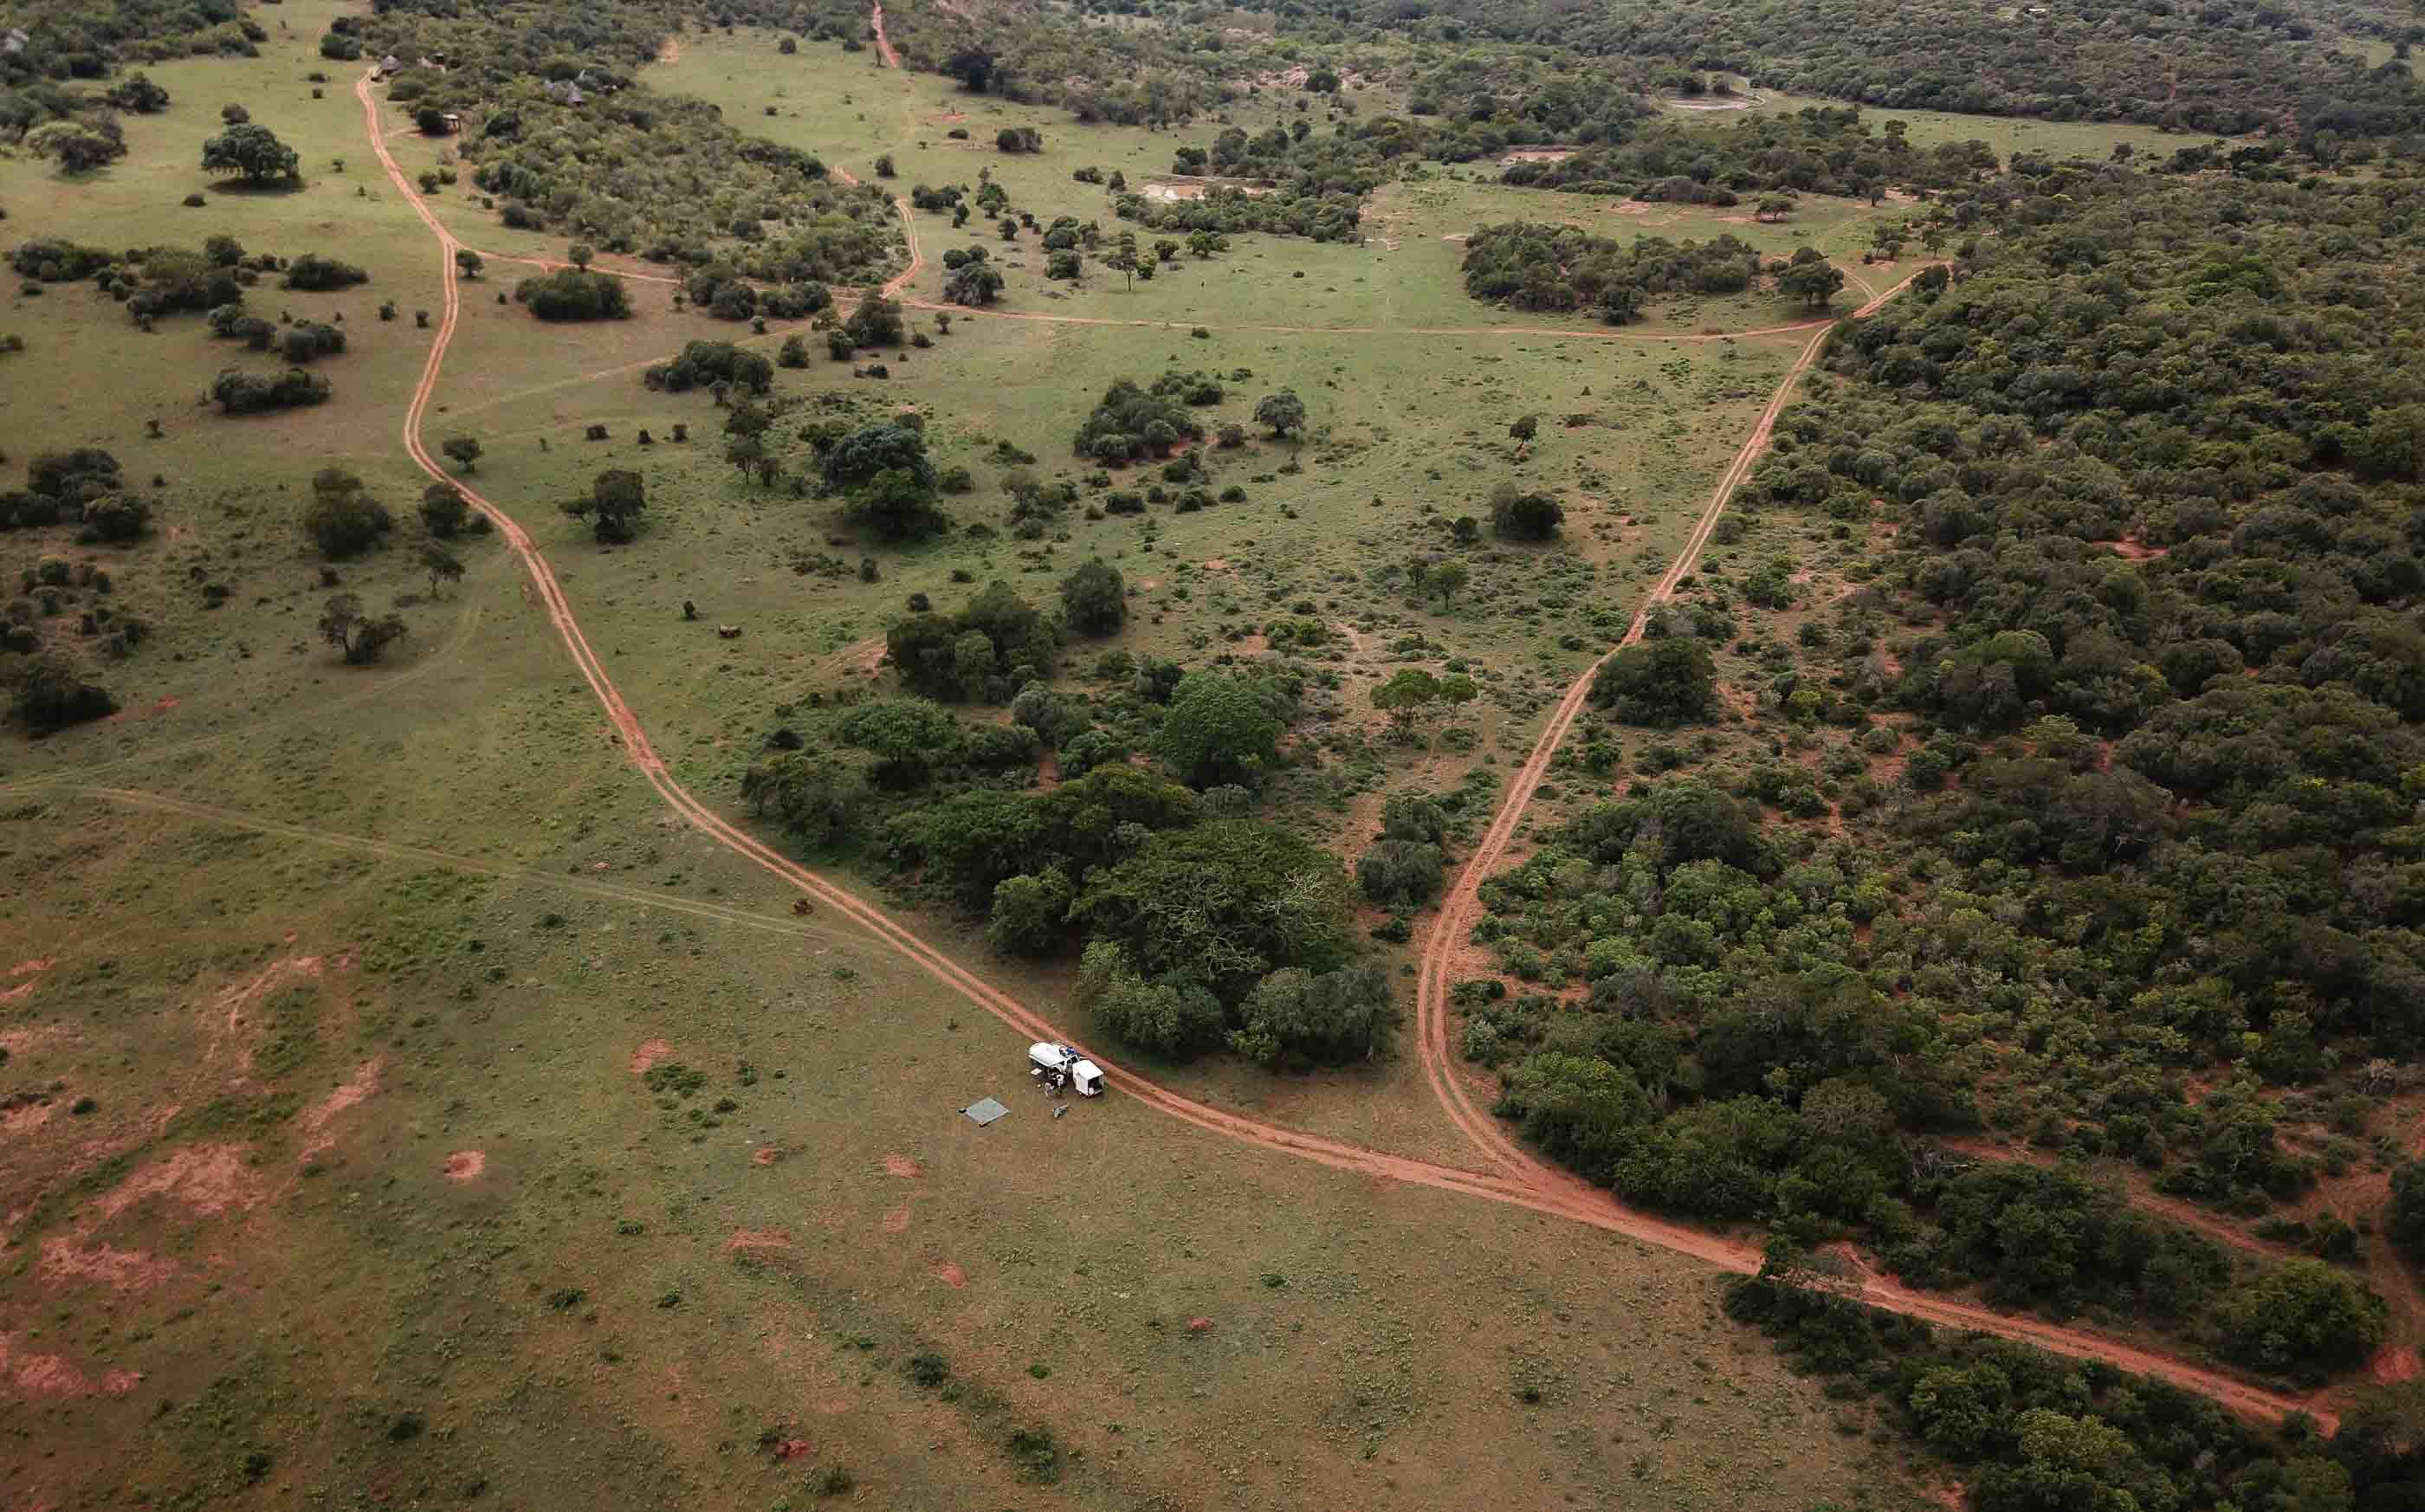 drone testing station in South Africa